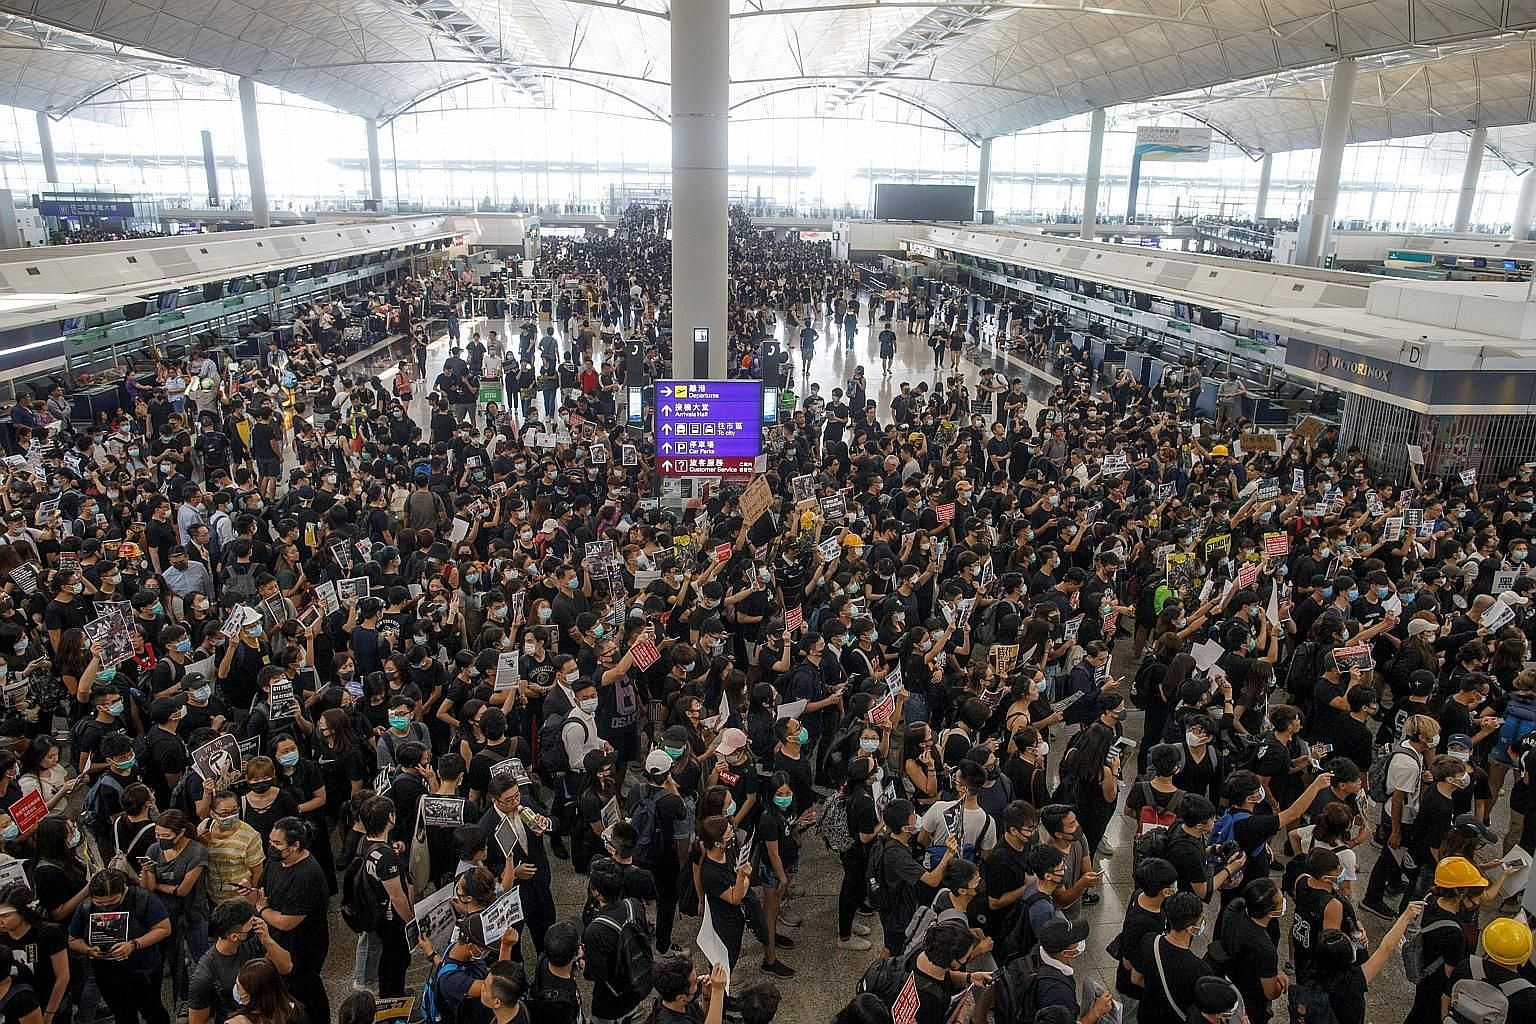 Protesters swarming the departure hall of Hong Kong airport yesterday, the fifth continuous day that they have occupied the facility. PHOTO: REUTERS